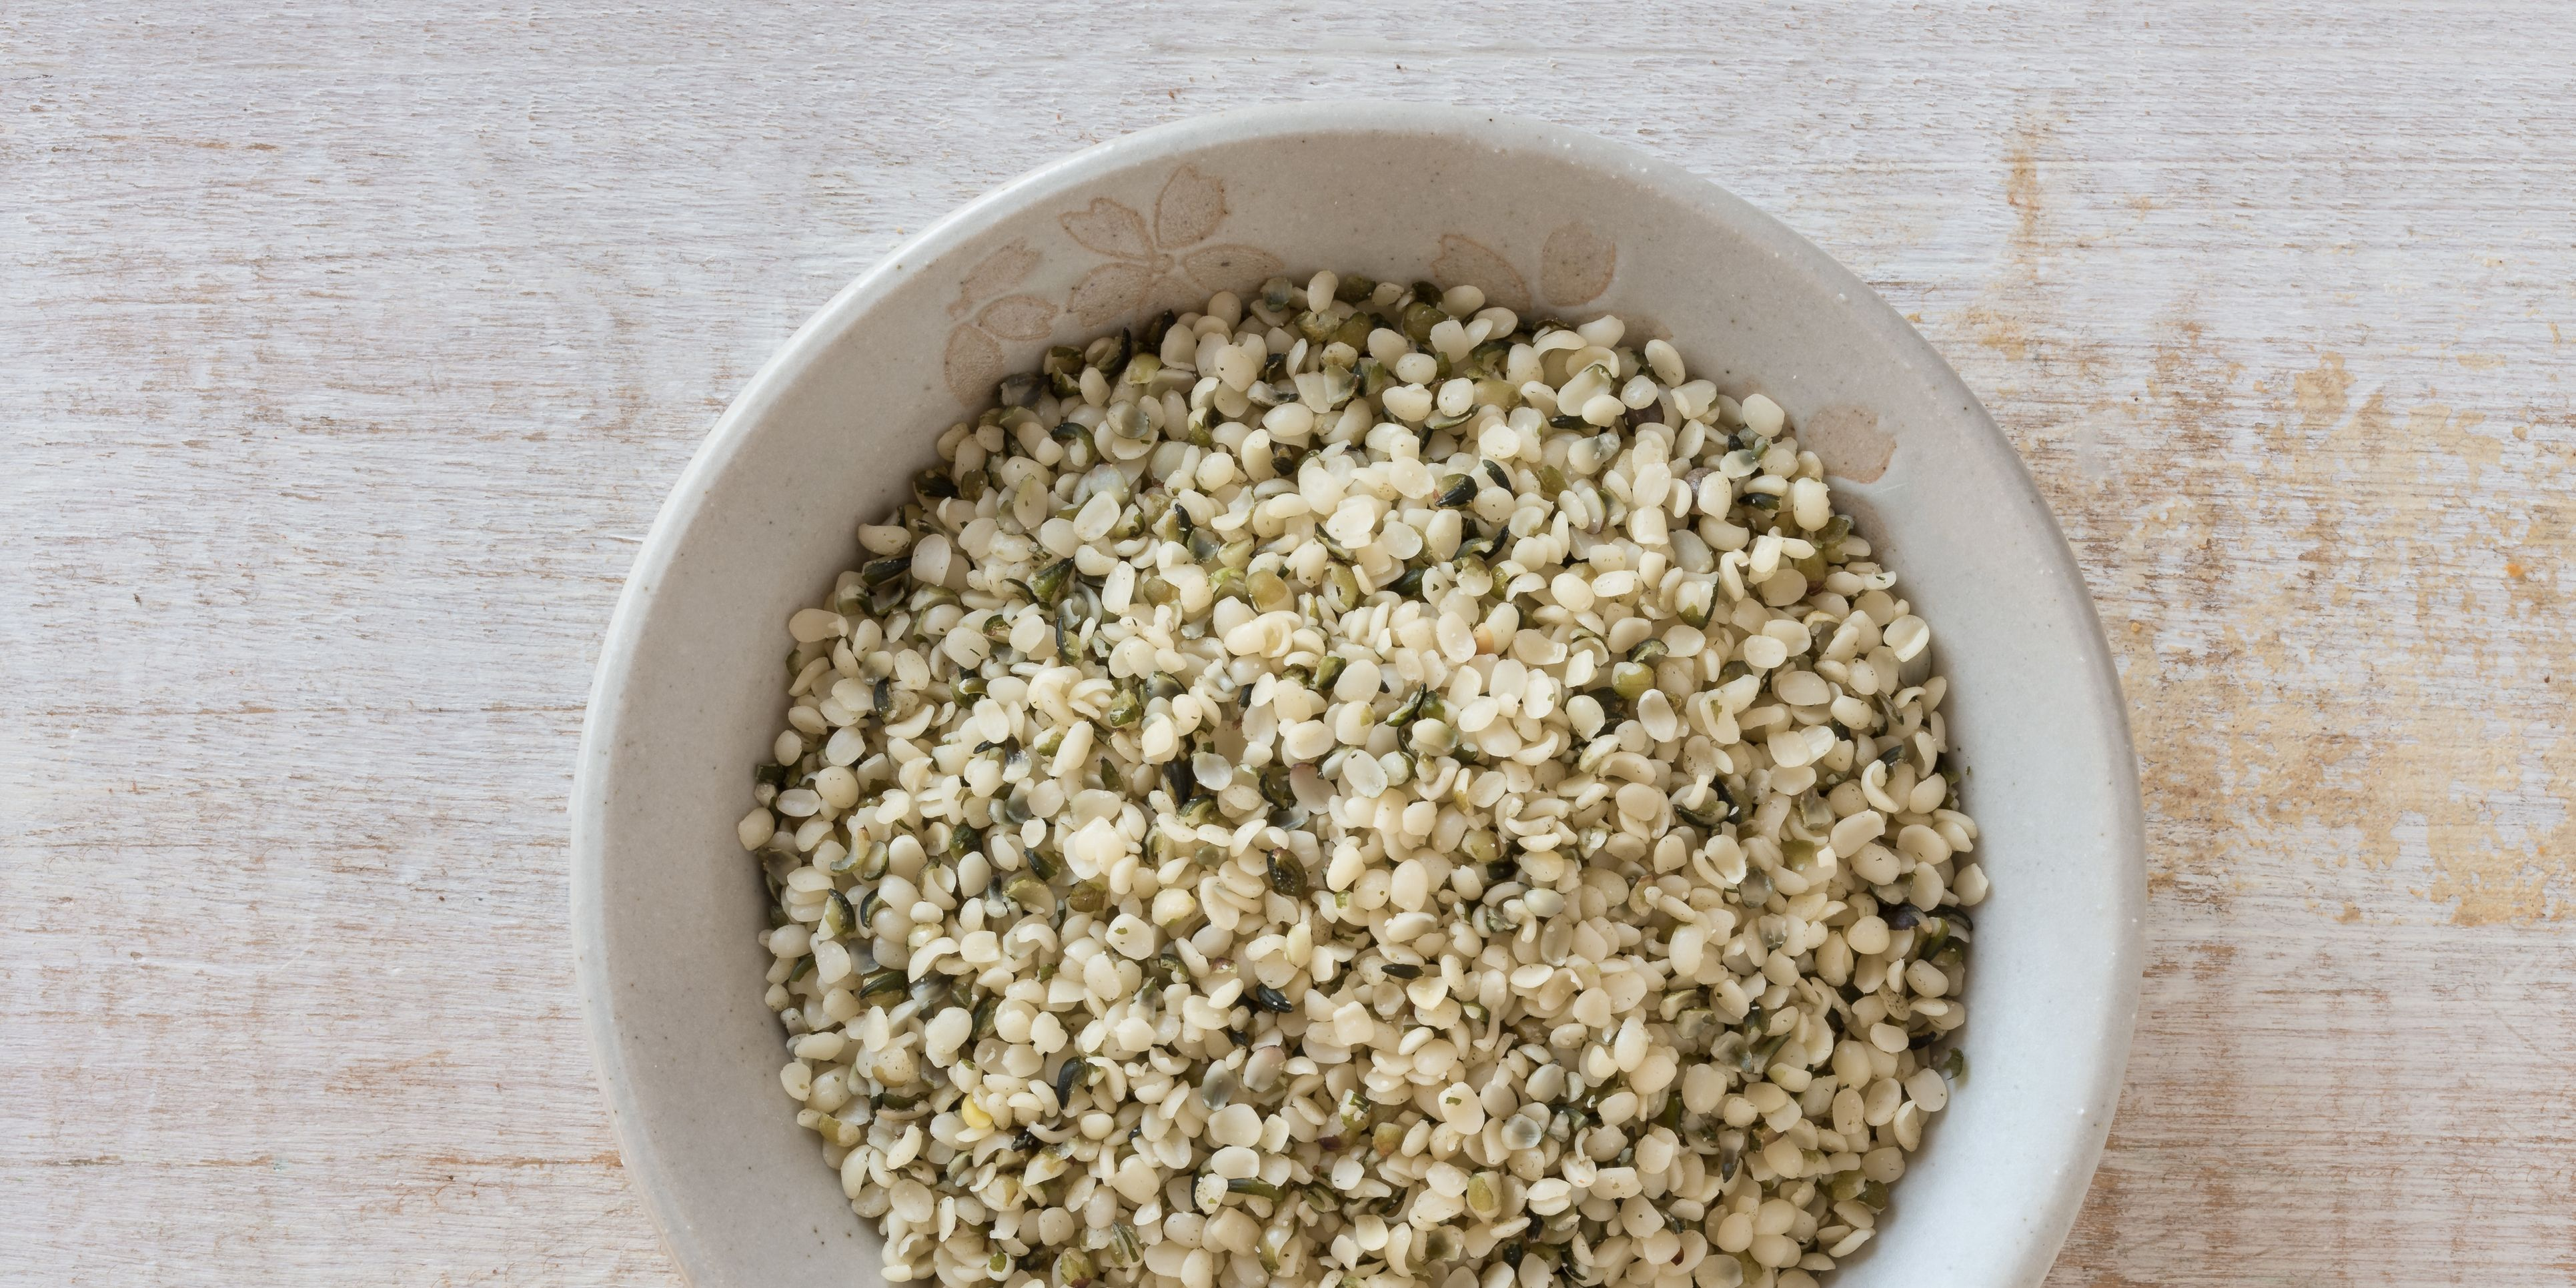 Directly Above Shot Of Hemp Seeds In Bowl On Table